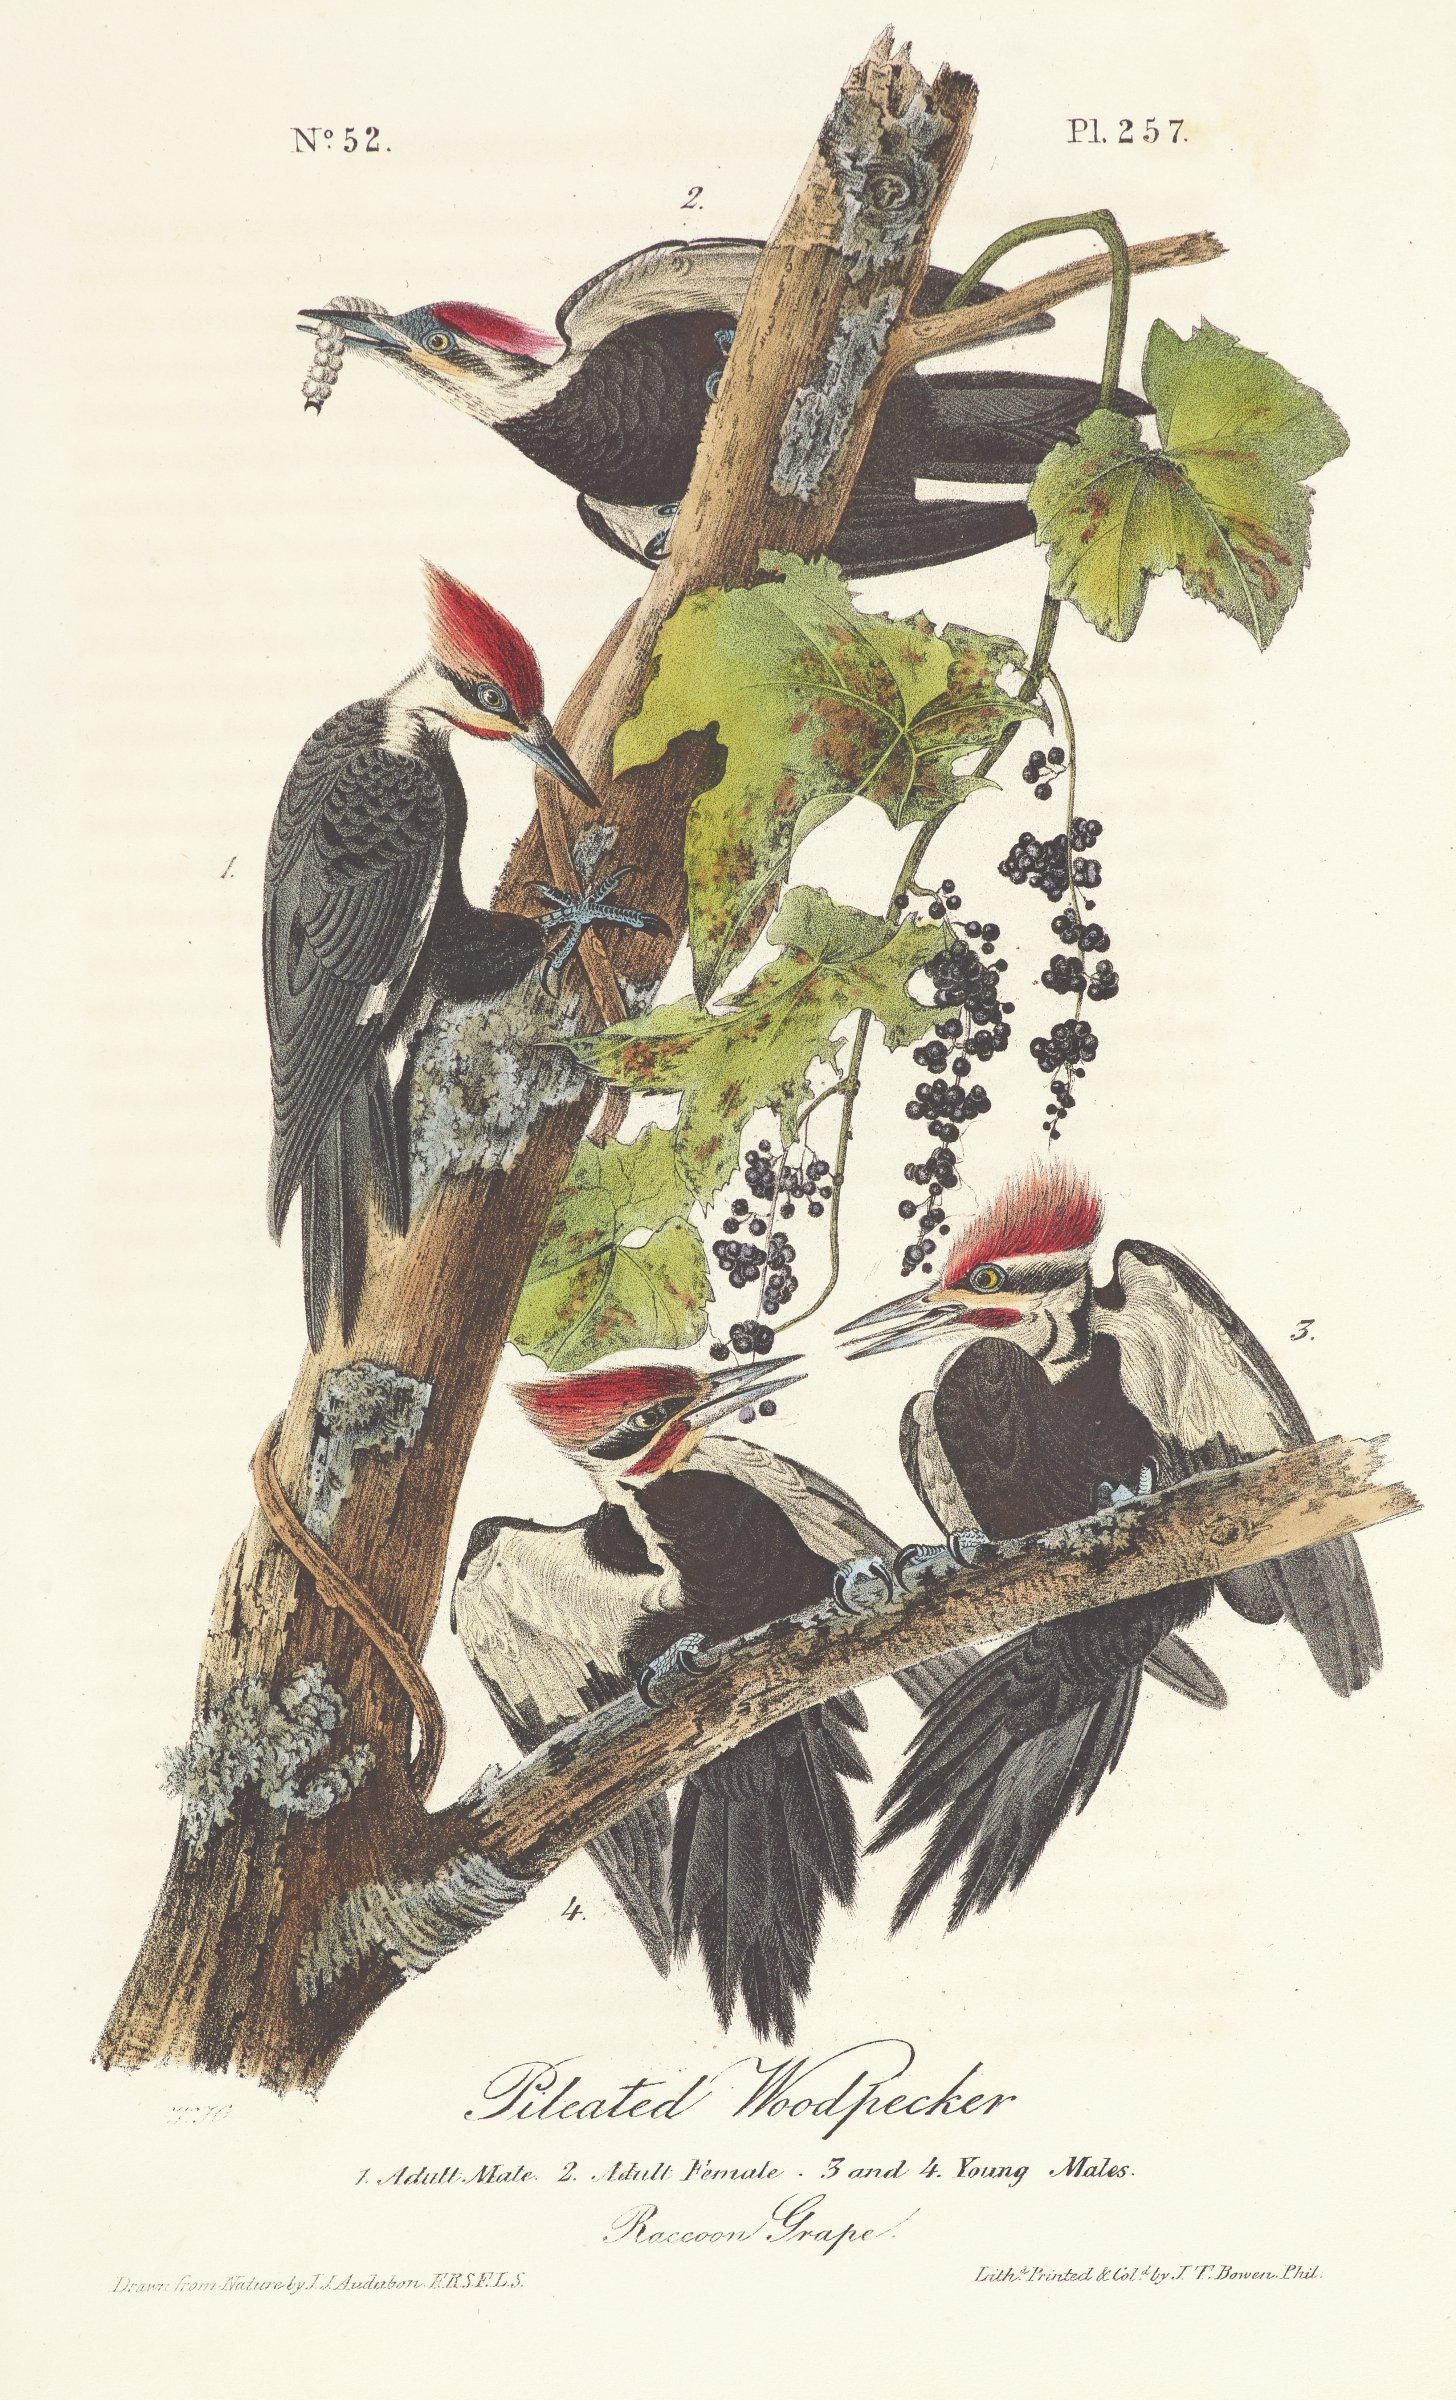 Four woodpeckers are depicted on a tree branch producing multi-pointed leaves and small, black berries. The woodpeckers are characterized by raised red feathers on their heads with thick black and red bands on each side of their faces.Their bodies are covered primarily in black feathers with white on their necks and underside of their wings.